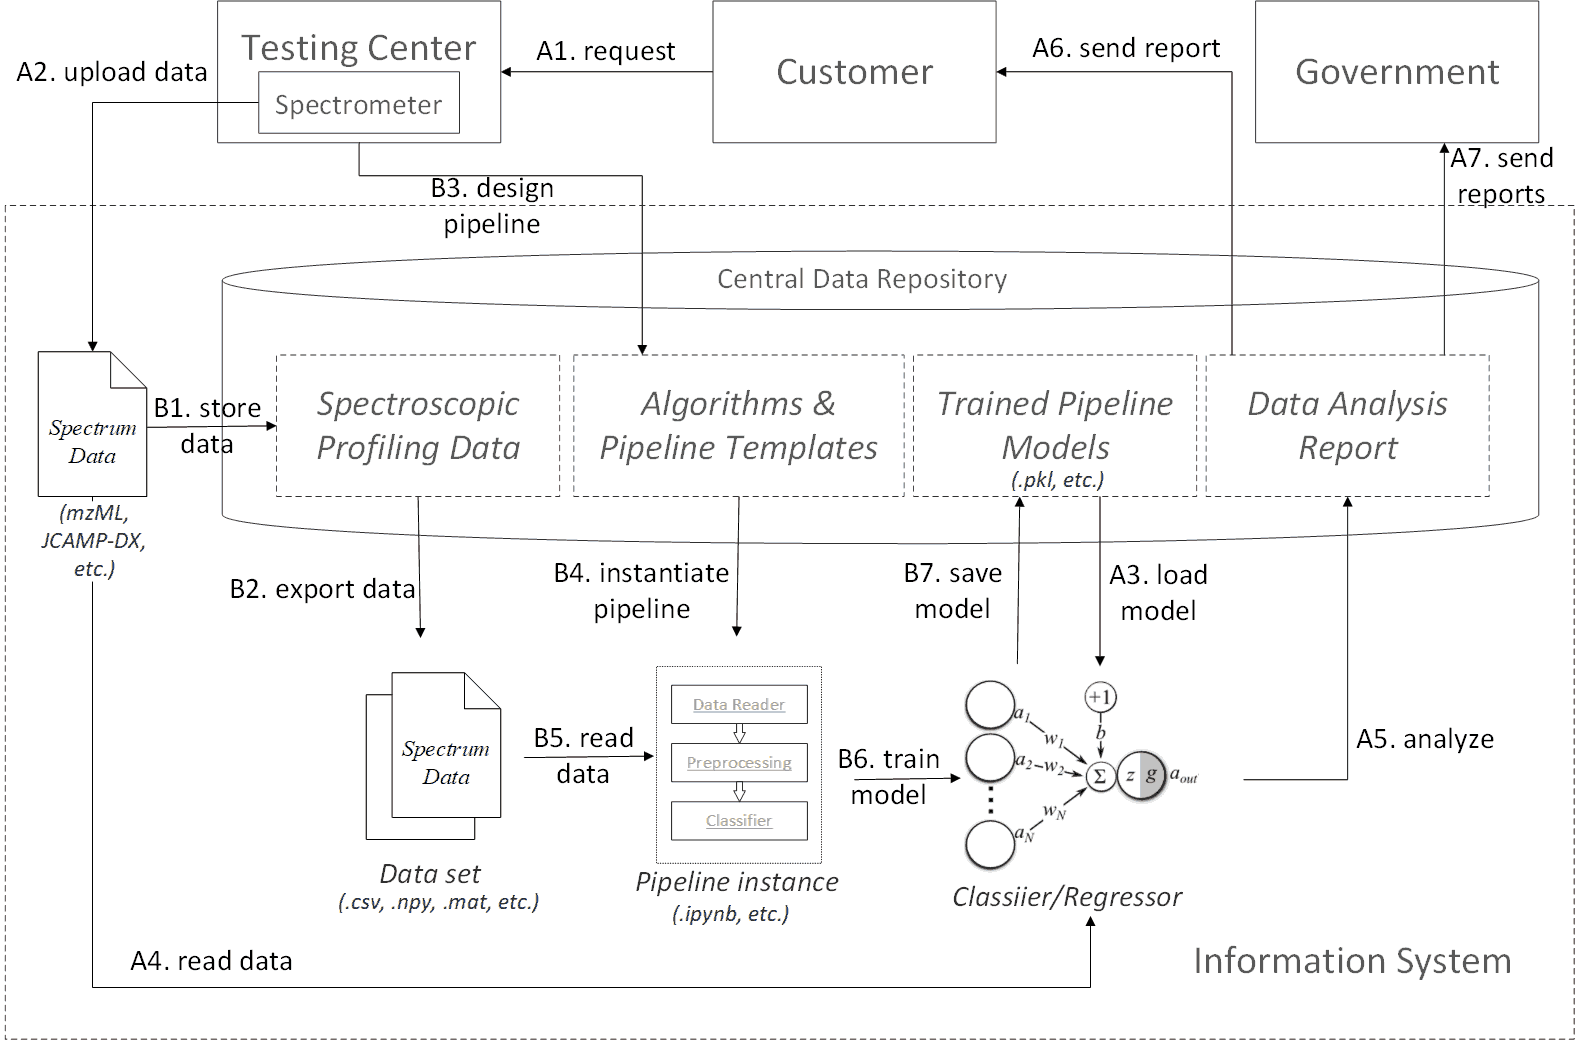 Spectroscopic profiling data processing workflow profile